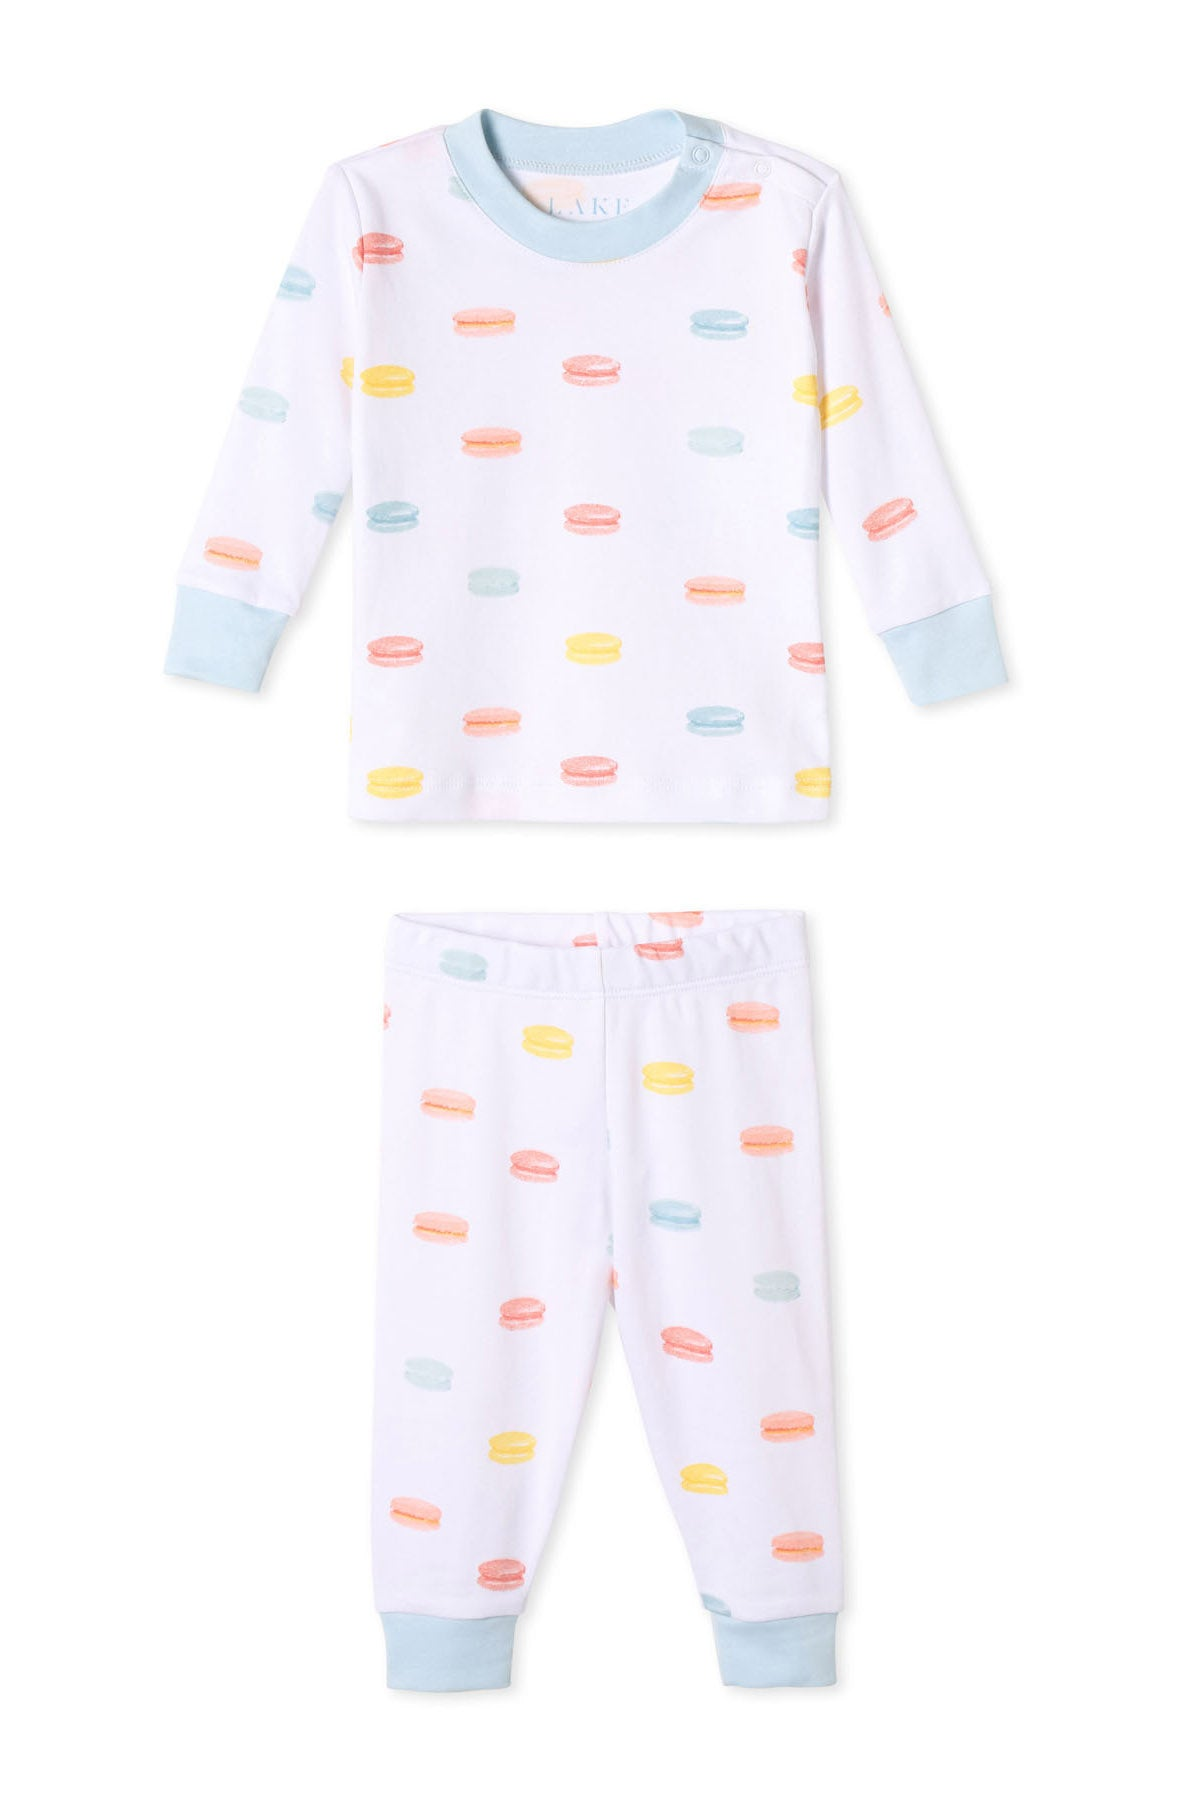 Baby Long-Long Set in Macarons